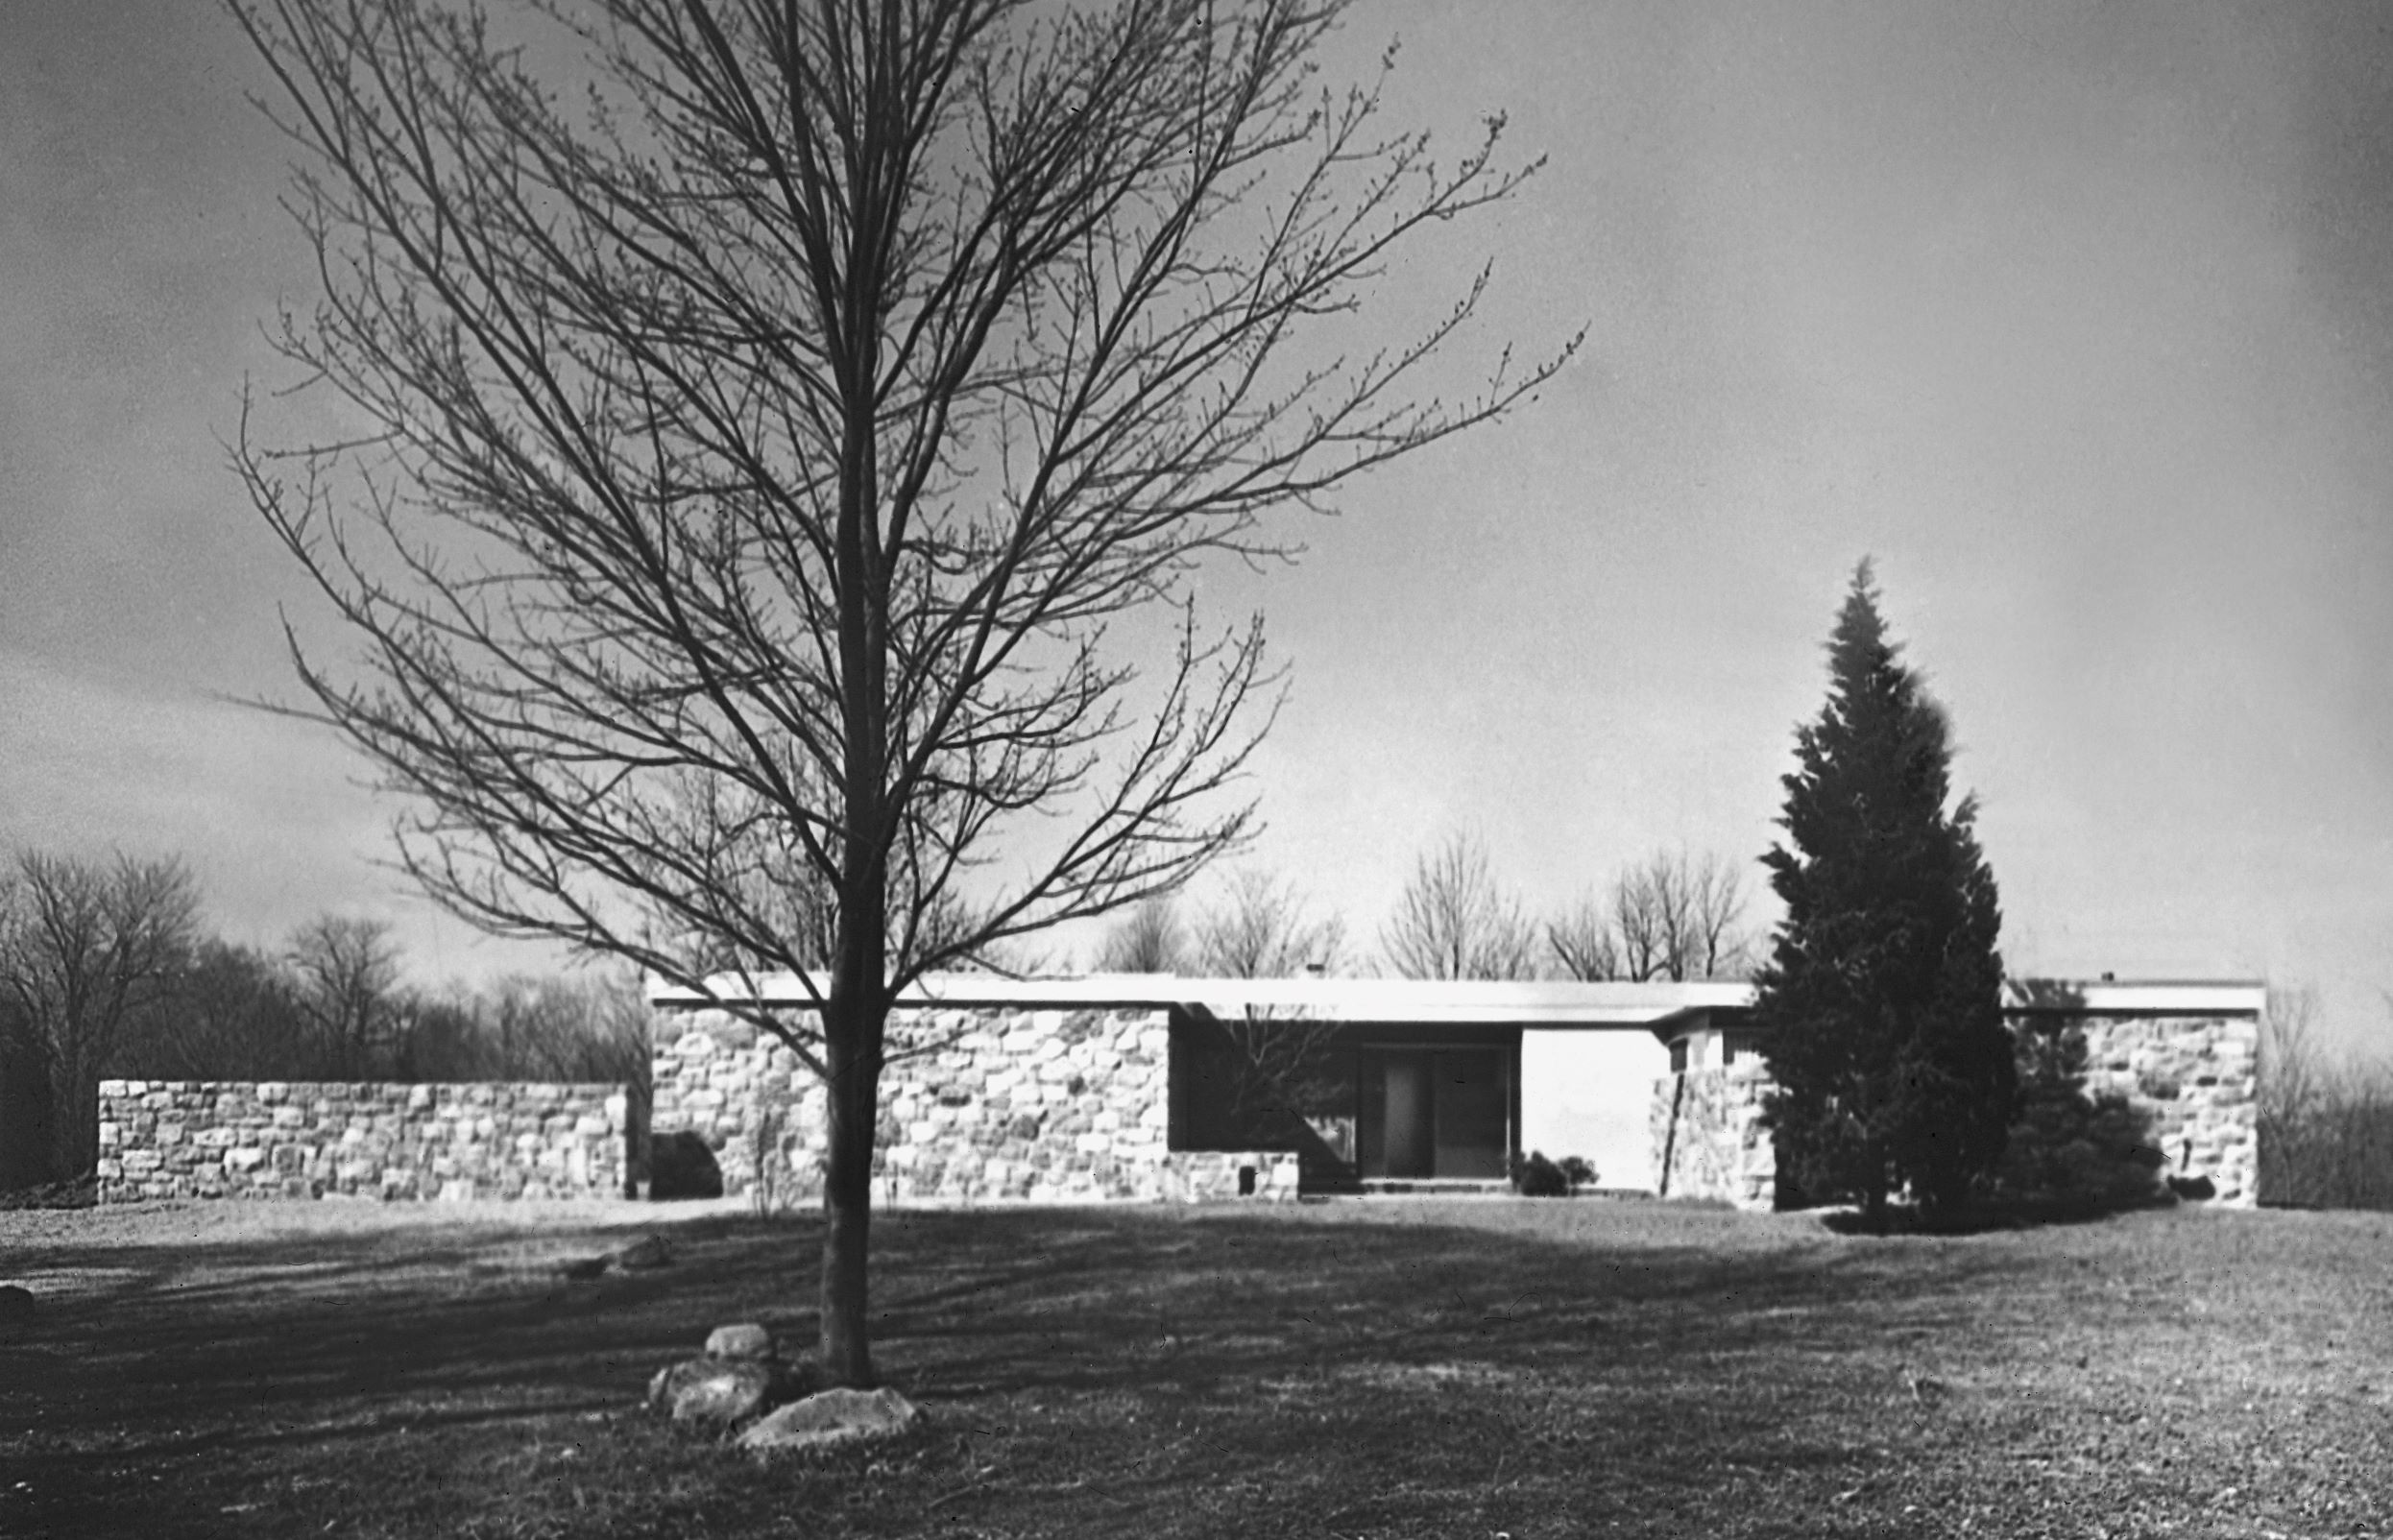 Breuer House II, Marcel Breuer, New Canaan, Connecticut (US), 1951.  Ben Schnall / Marcel Breuer Papers, Syracuse University Library and Marcel Breuer Papers, Syracuse University Library